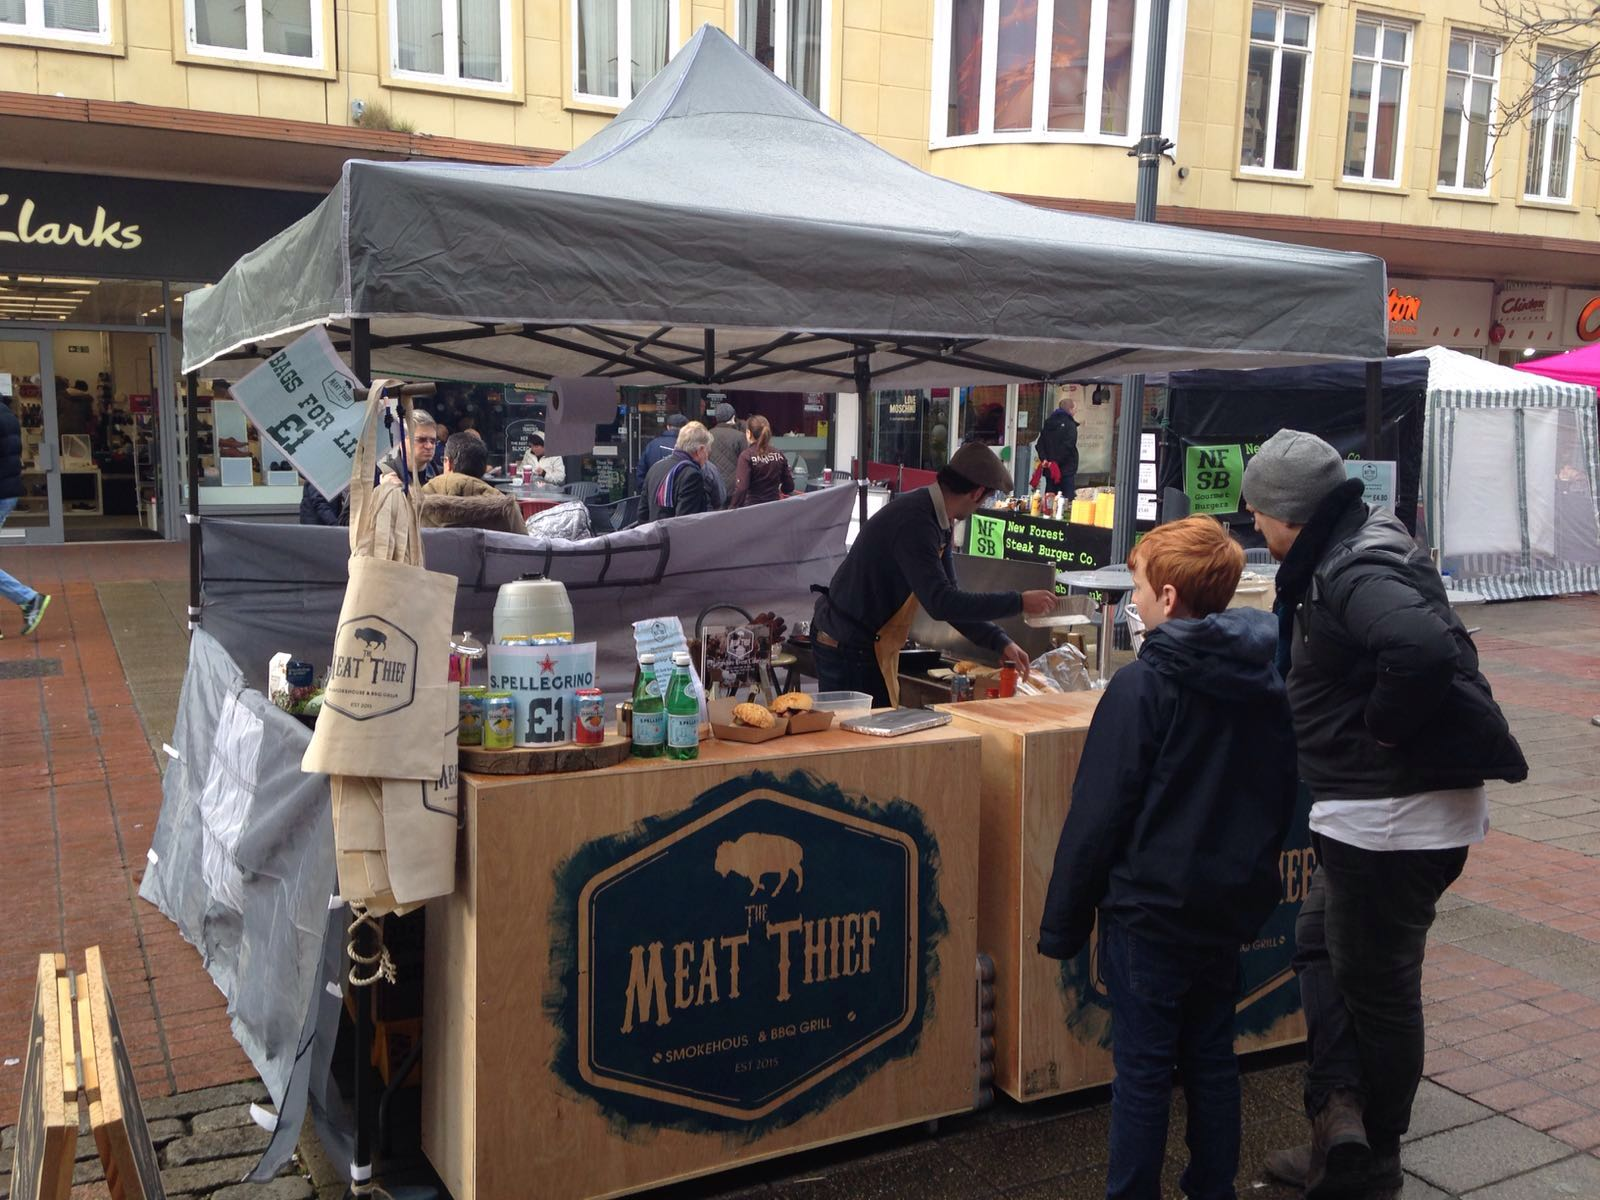 The Meat Thief - Hampshire Catering Company